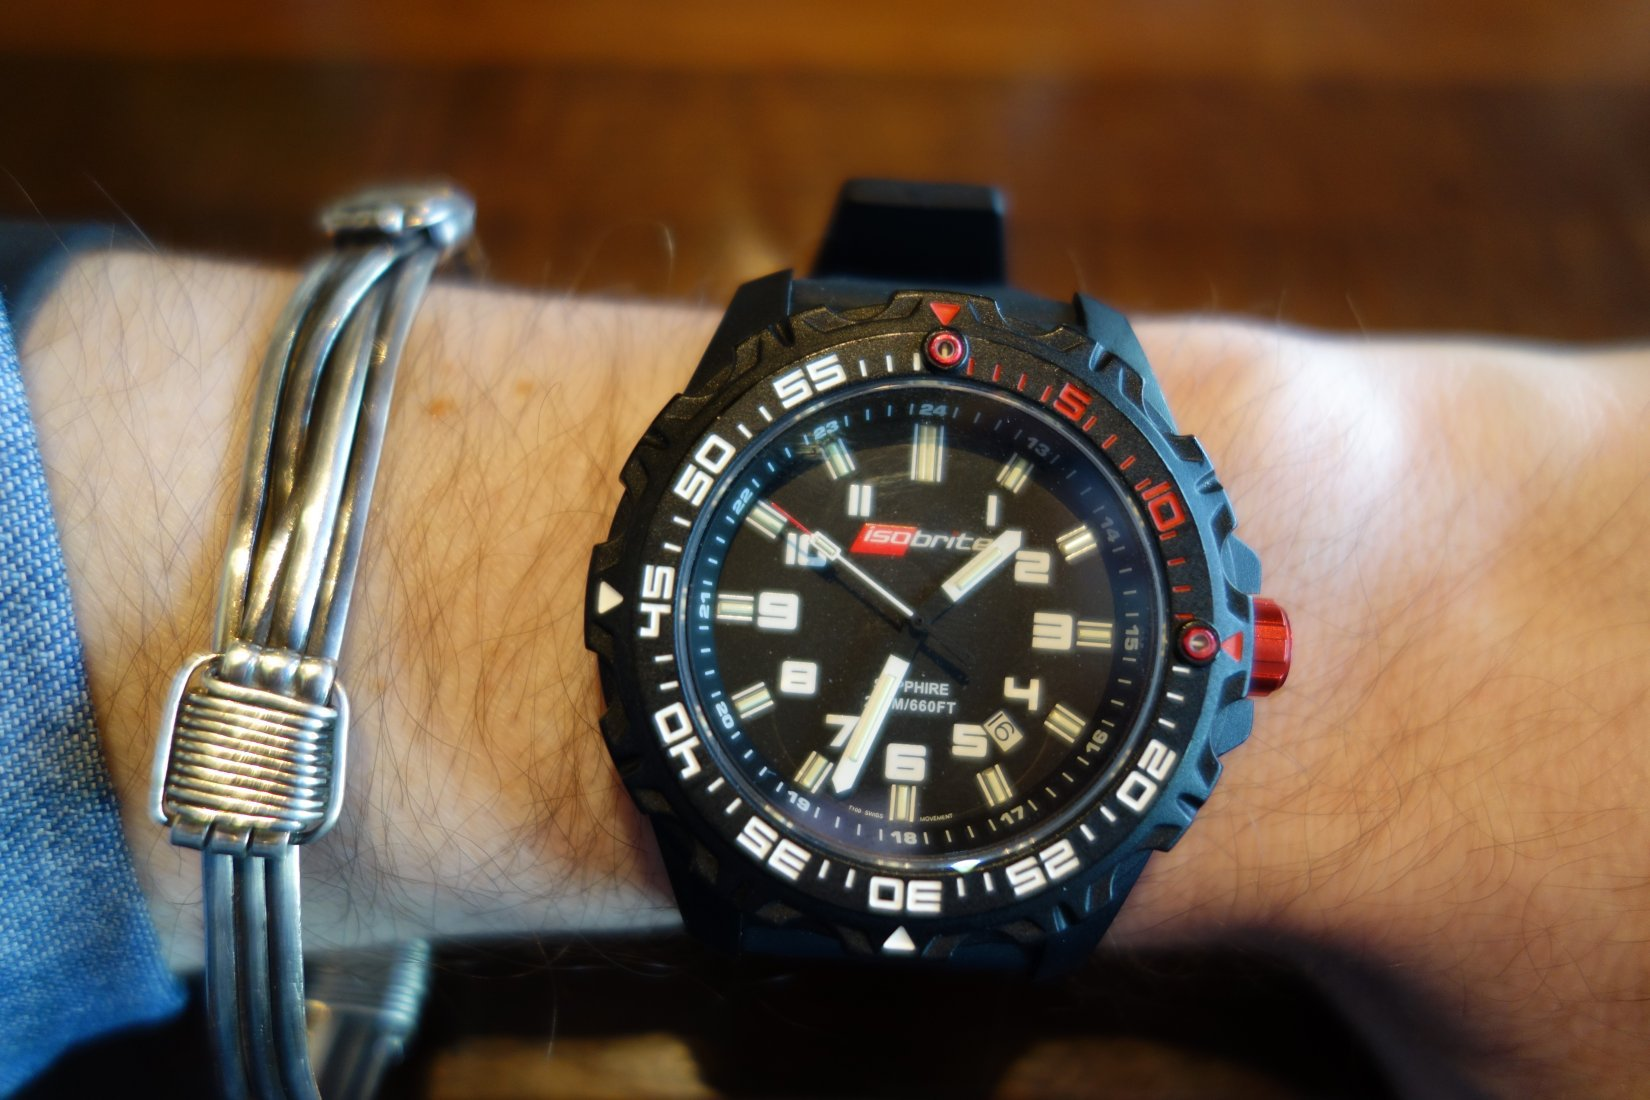 ArmourLite IsoBrite Tactical Watch Diving Watch T100 Tritium H3 Illumination Miami David Crane DefenseReview.com DR 1 ArmourLite IsoBrite Hard Use Tactical Watch/Diving Watch with T100 Tritium Illumination for Military and Law Enforcement Tactical Operations, Maritime Operations and Civilian Tactical Shooting (Video!)